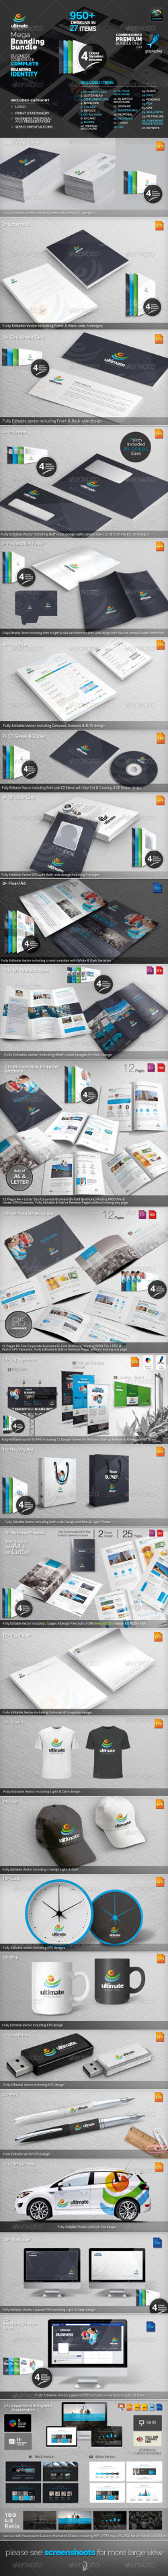 590px-Graphicriver-Clean-Busines-Branding-Identity-Graphics